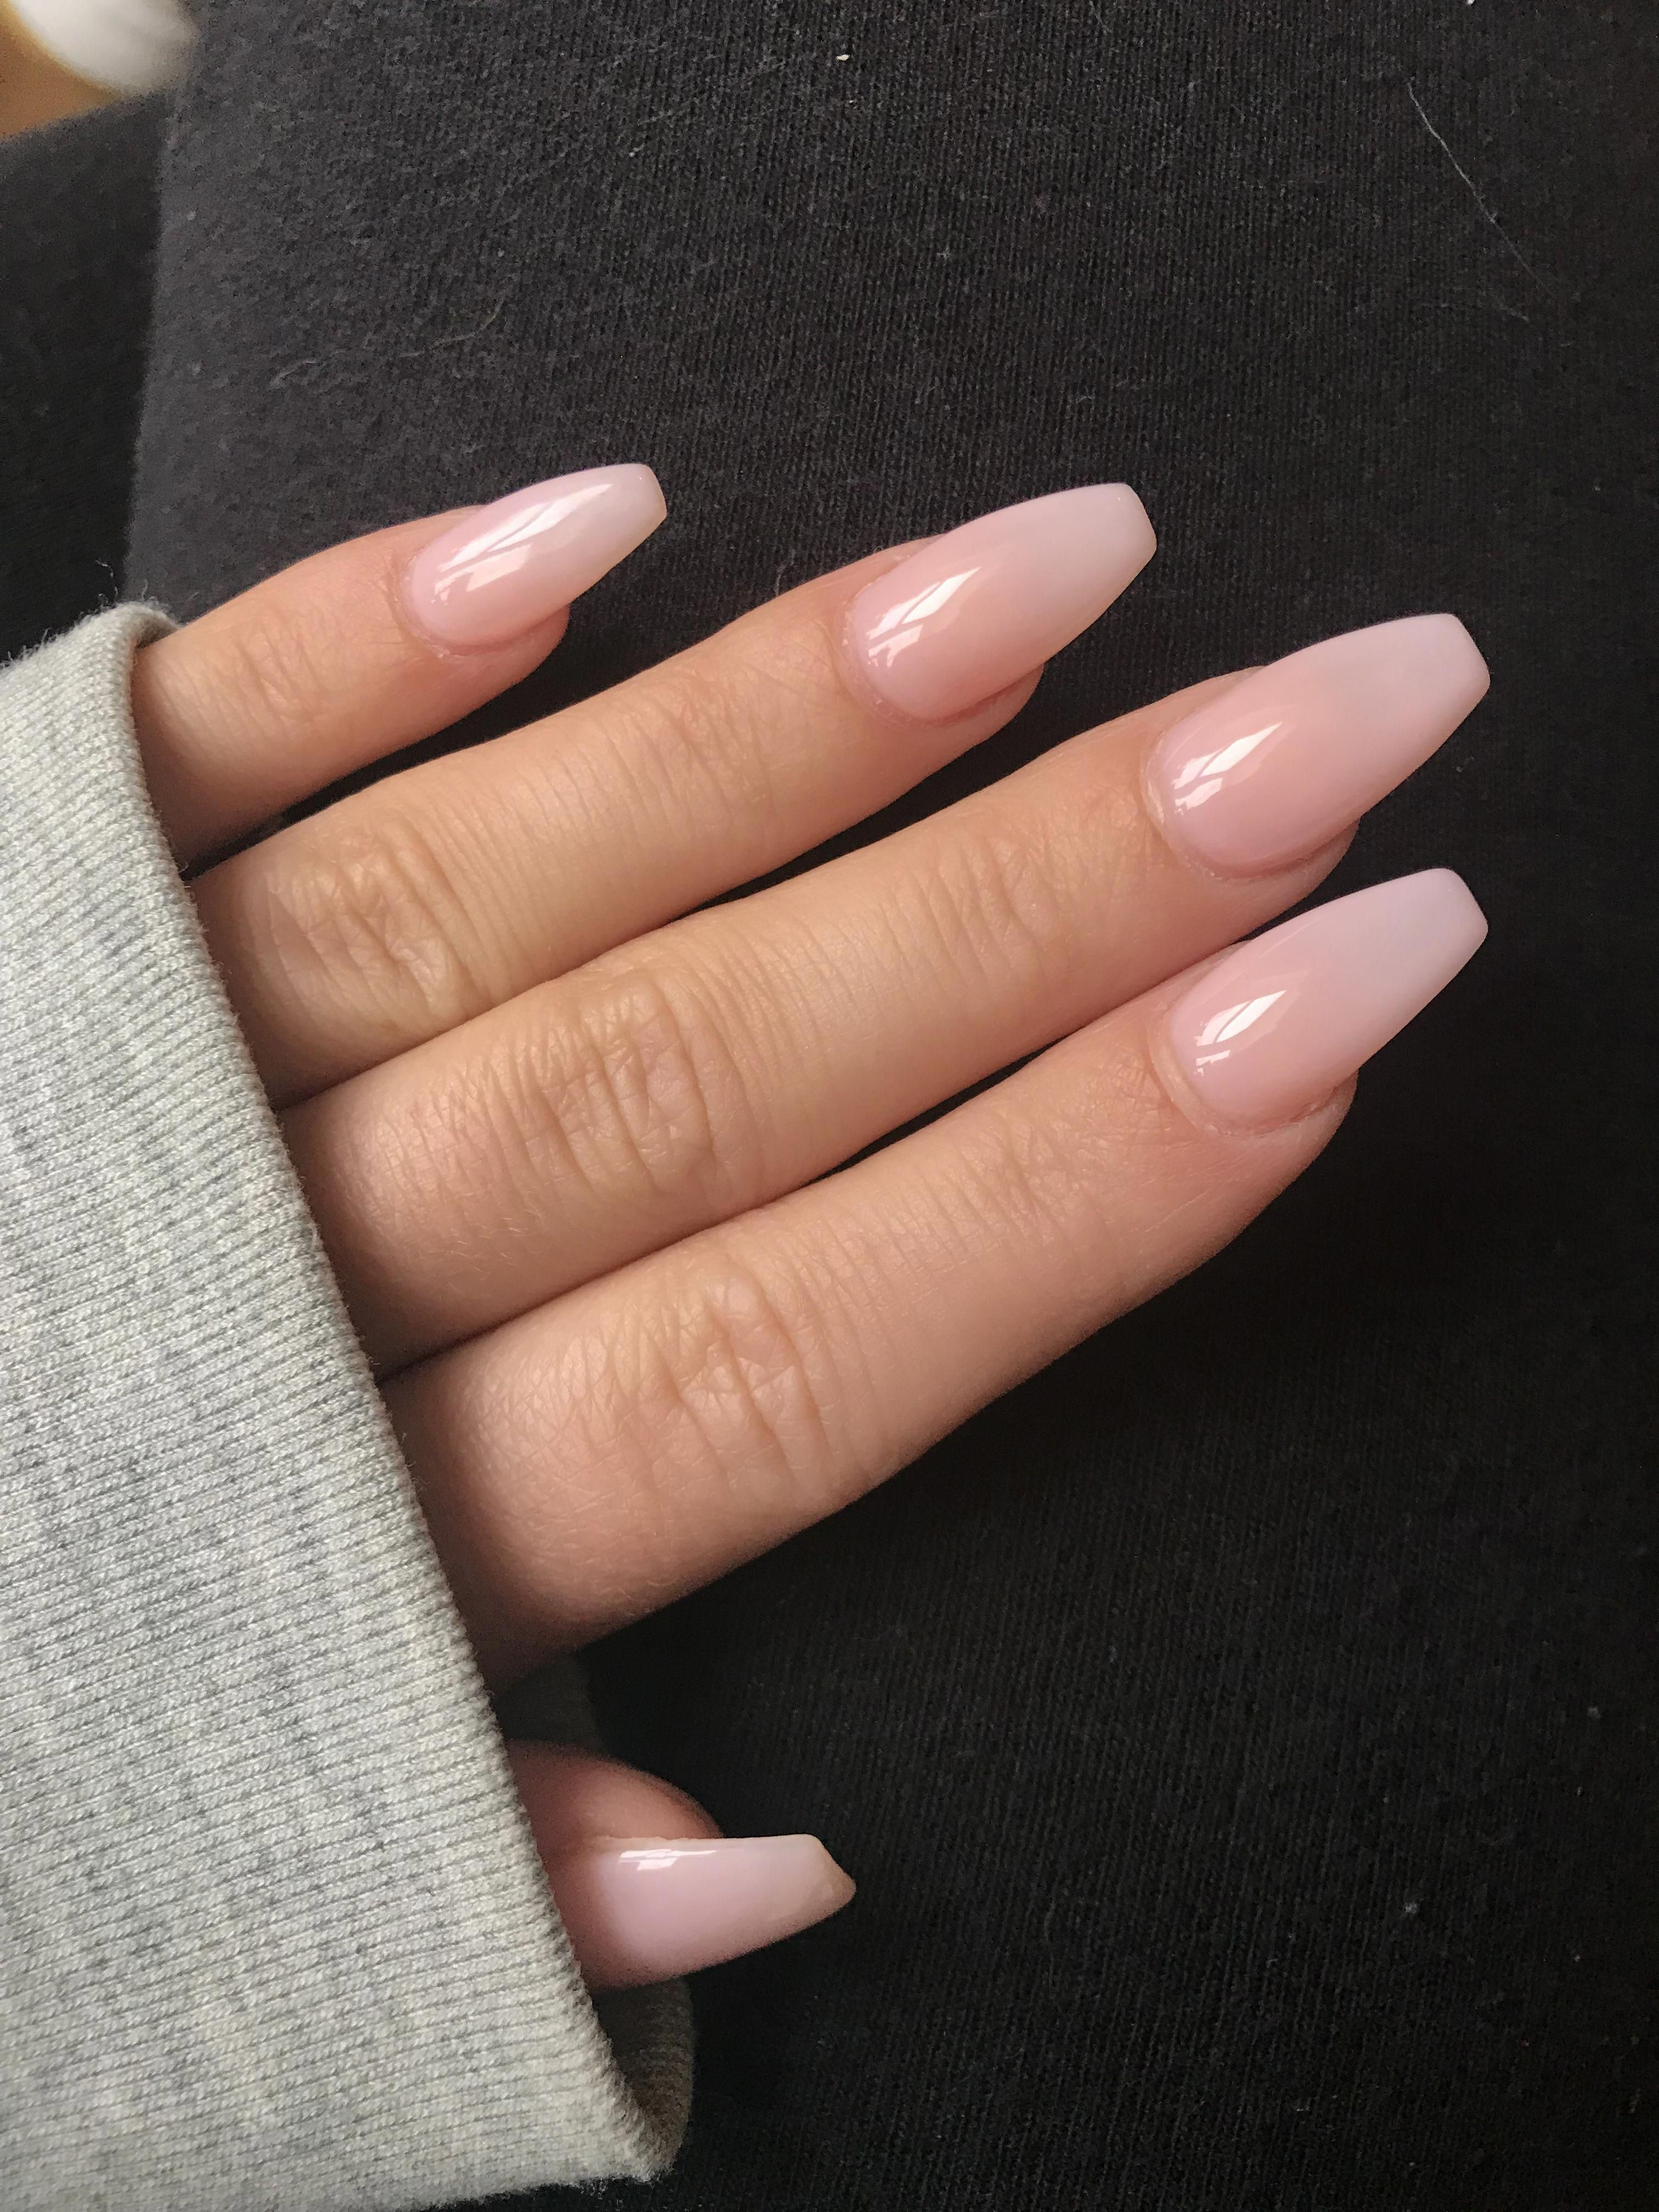 Image Result For Opi Pink Acrylic Coffin Nails Nailart With